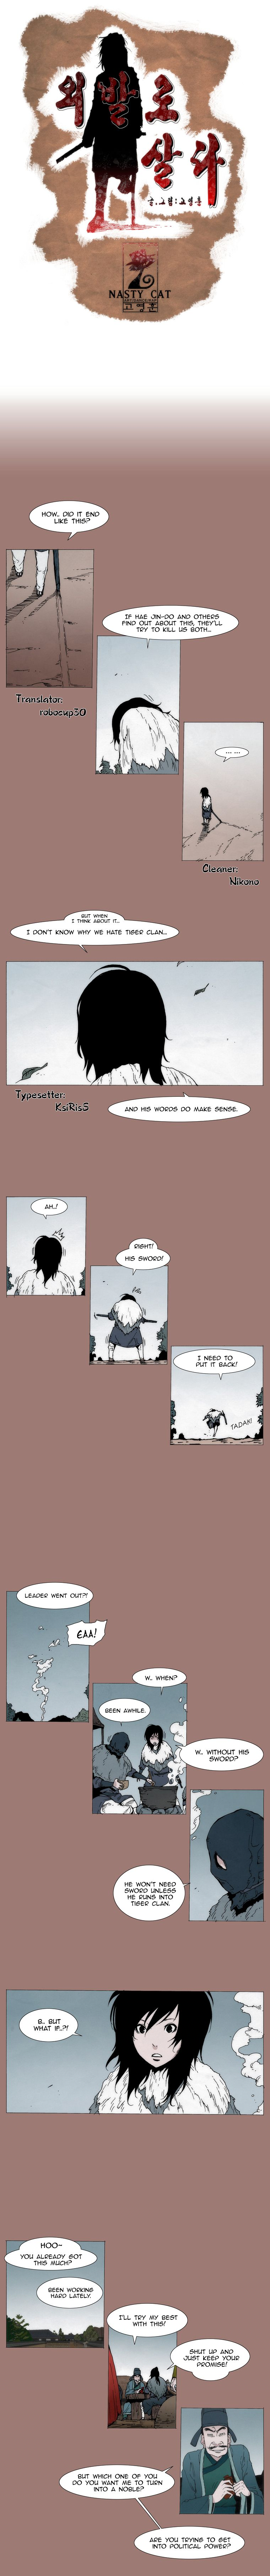 Living with One Leg 9 Page 1